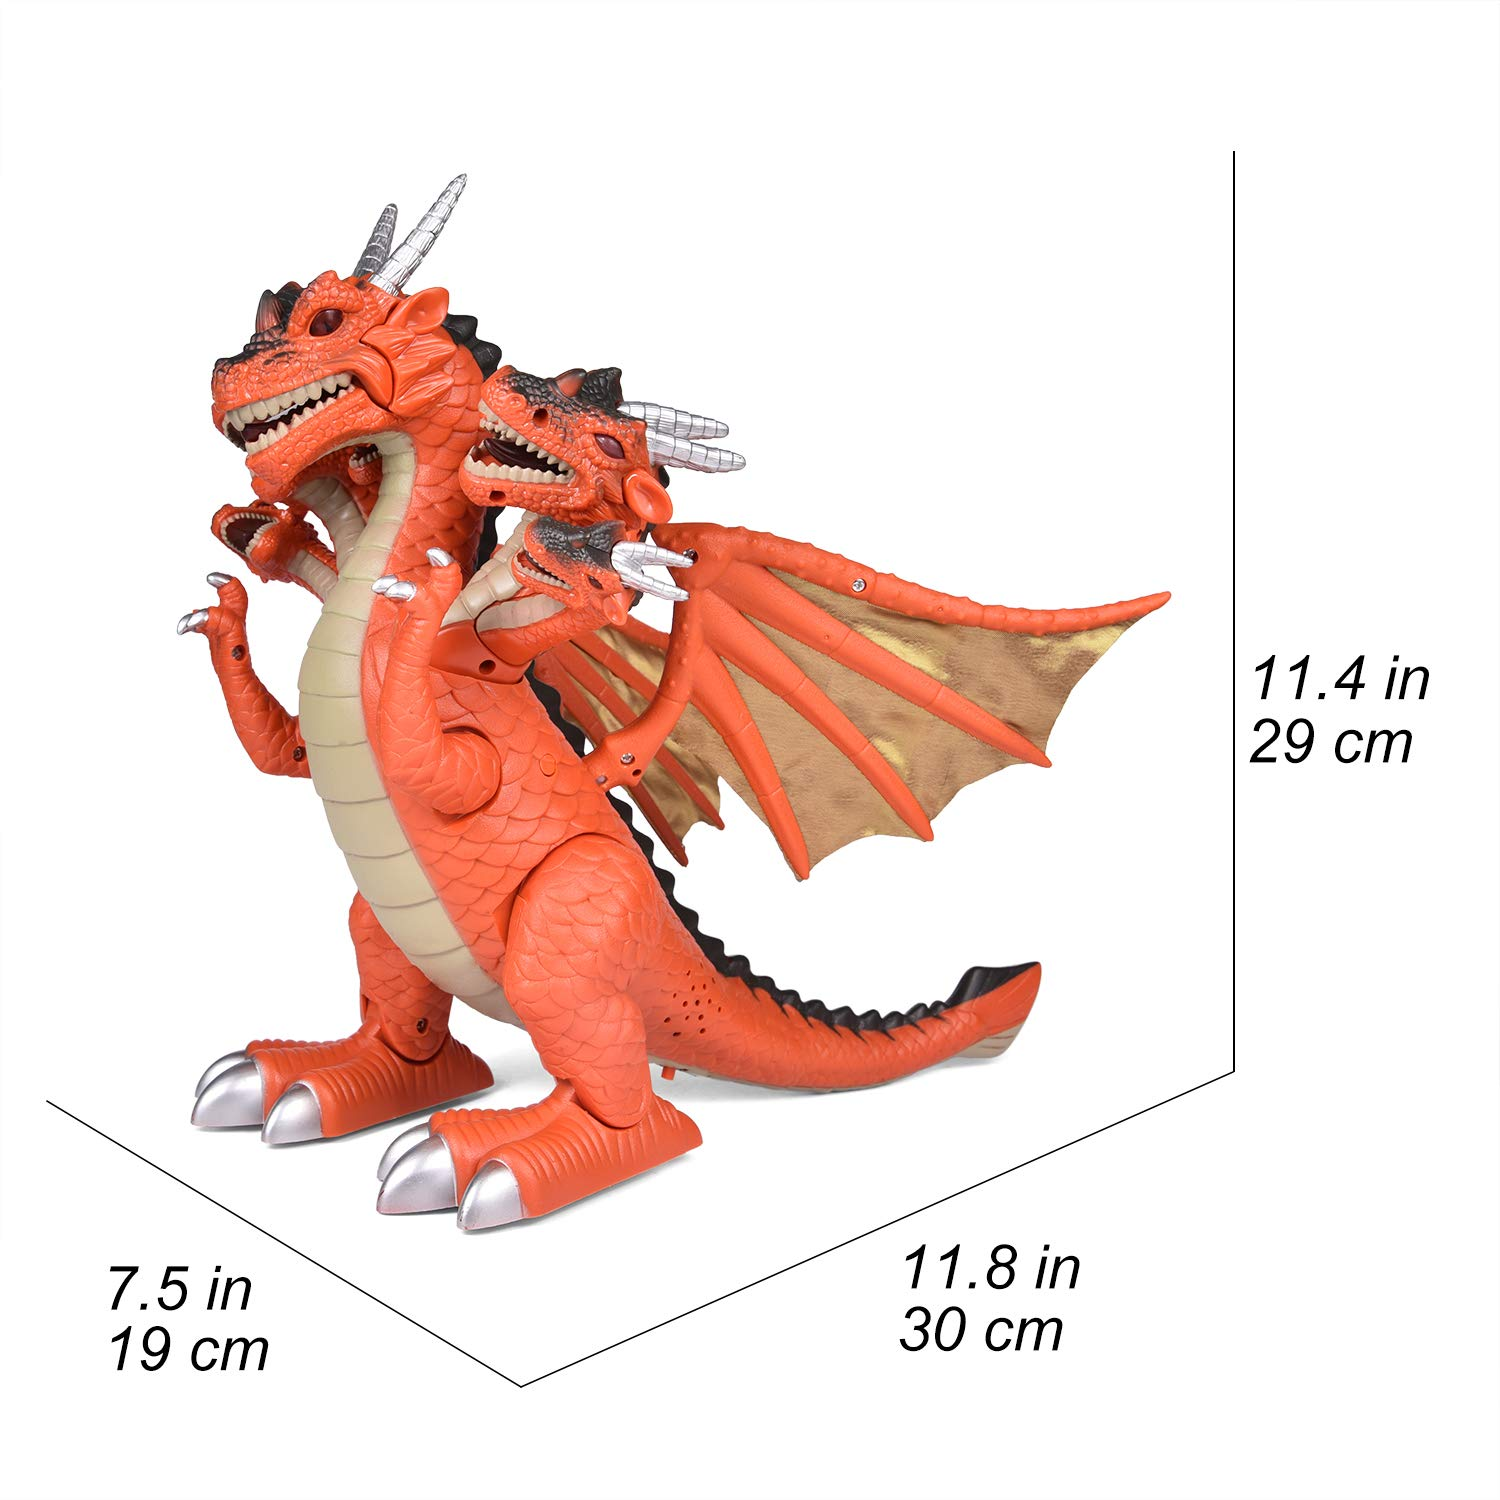 Dragon Toys for Boys, Seven Heads Walking Dragon 11.8''(L)×11.4''(H) Large Size with Lights and Sounds by FUN LITTLE TOYS (Image #6)